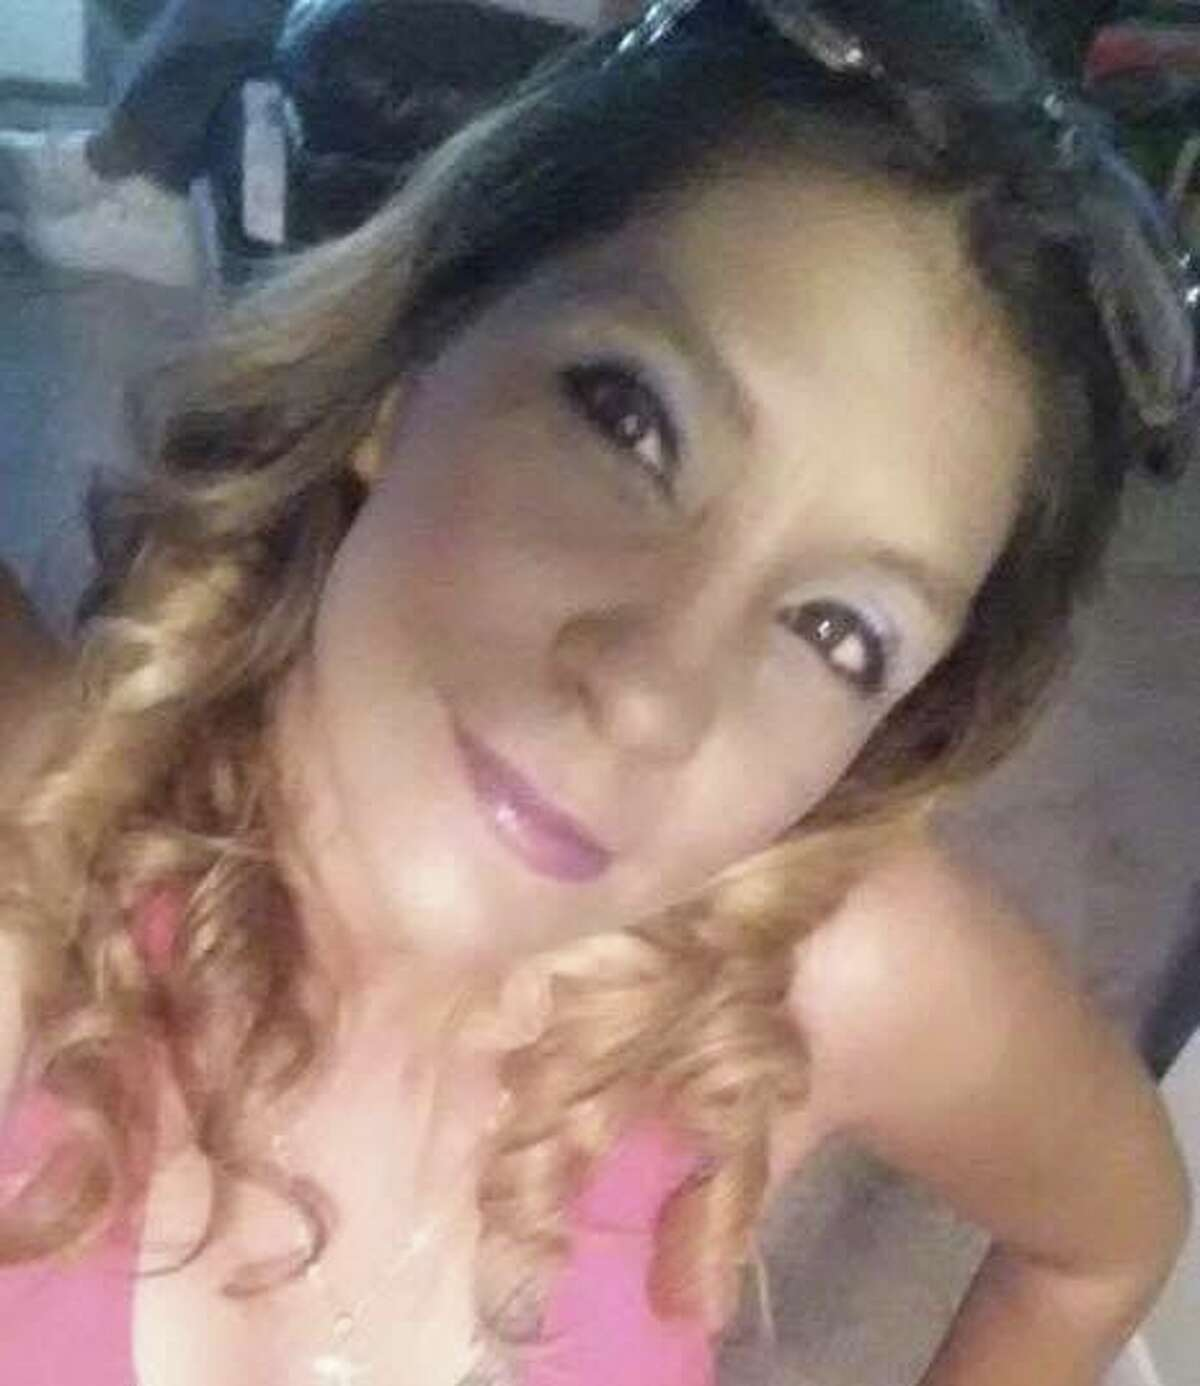 Cynthia Morales Sanchez, 41, died from apparent natural causes, possibly a heart attack, around 9 a.m. at Downtown Baptist Hospital.